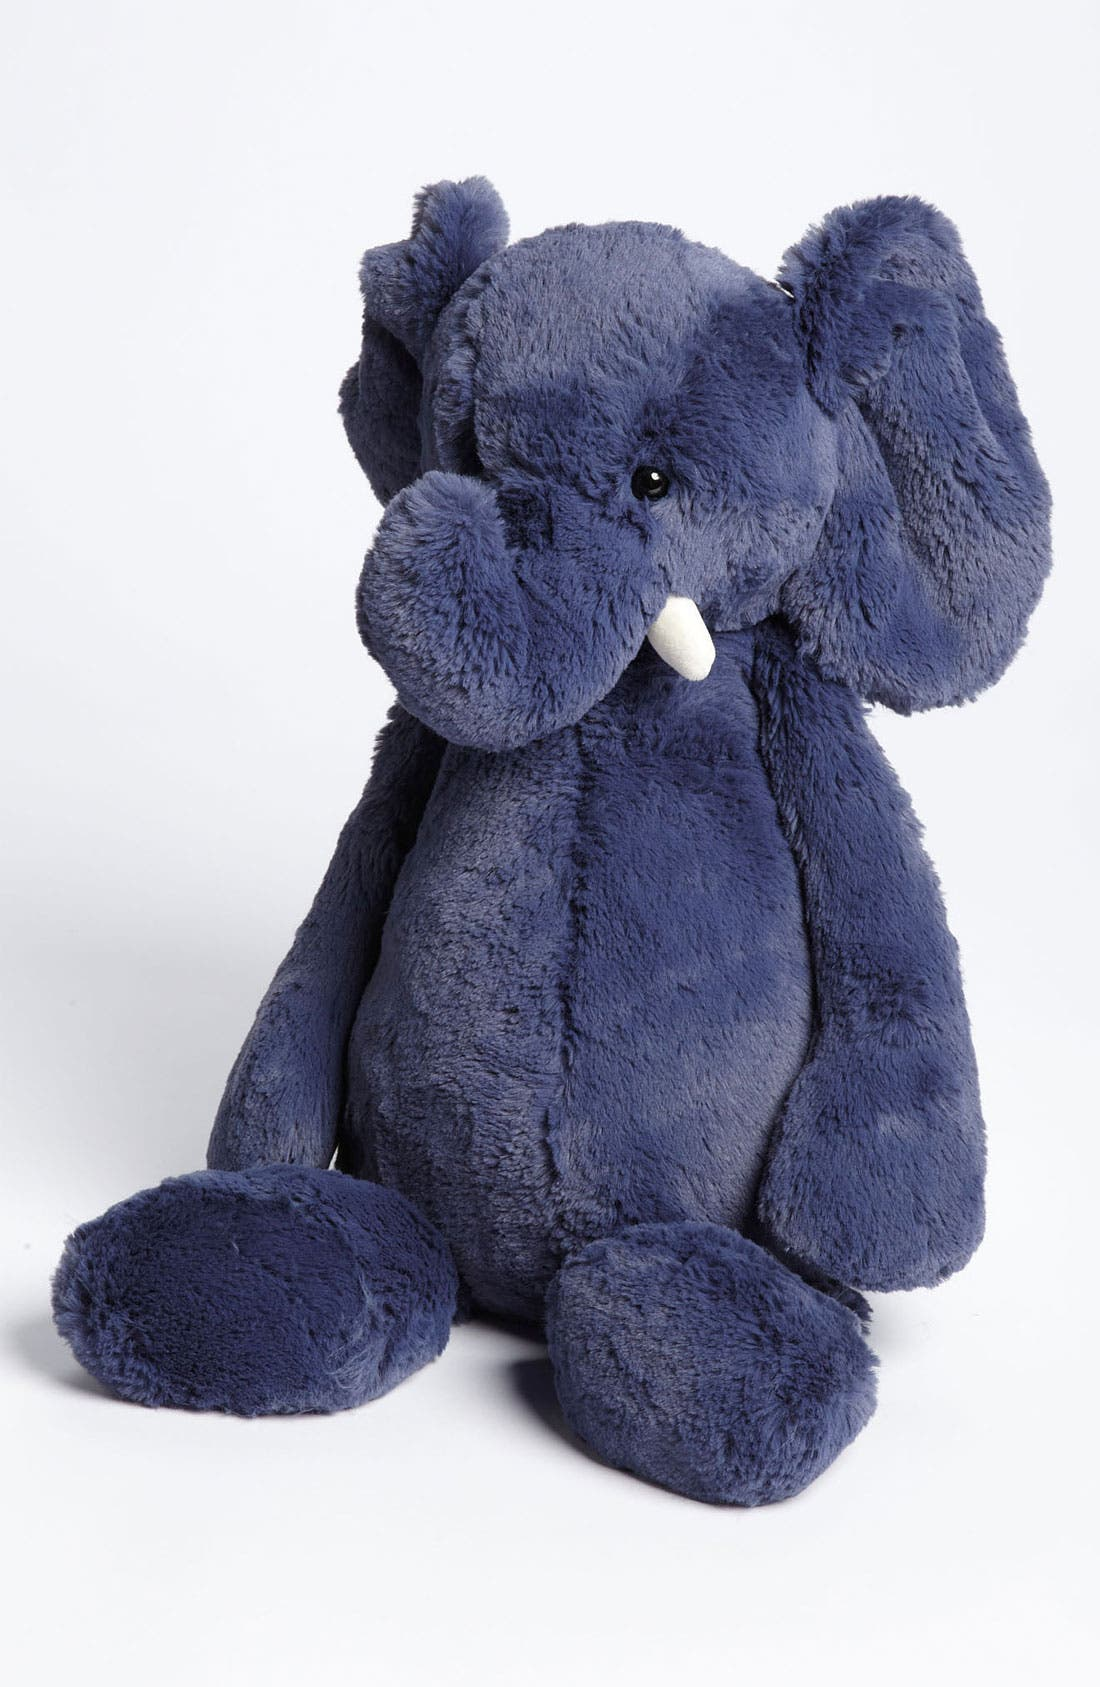 Jellycat 'Bashful Elephant' Stuffed Animal